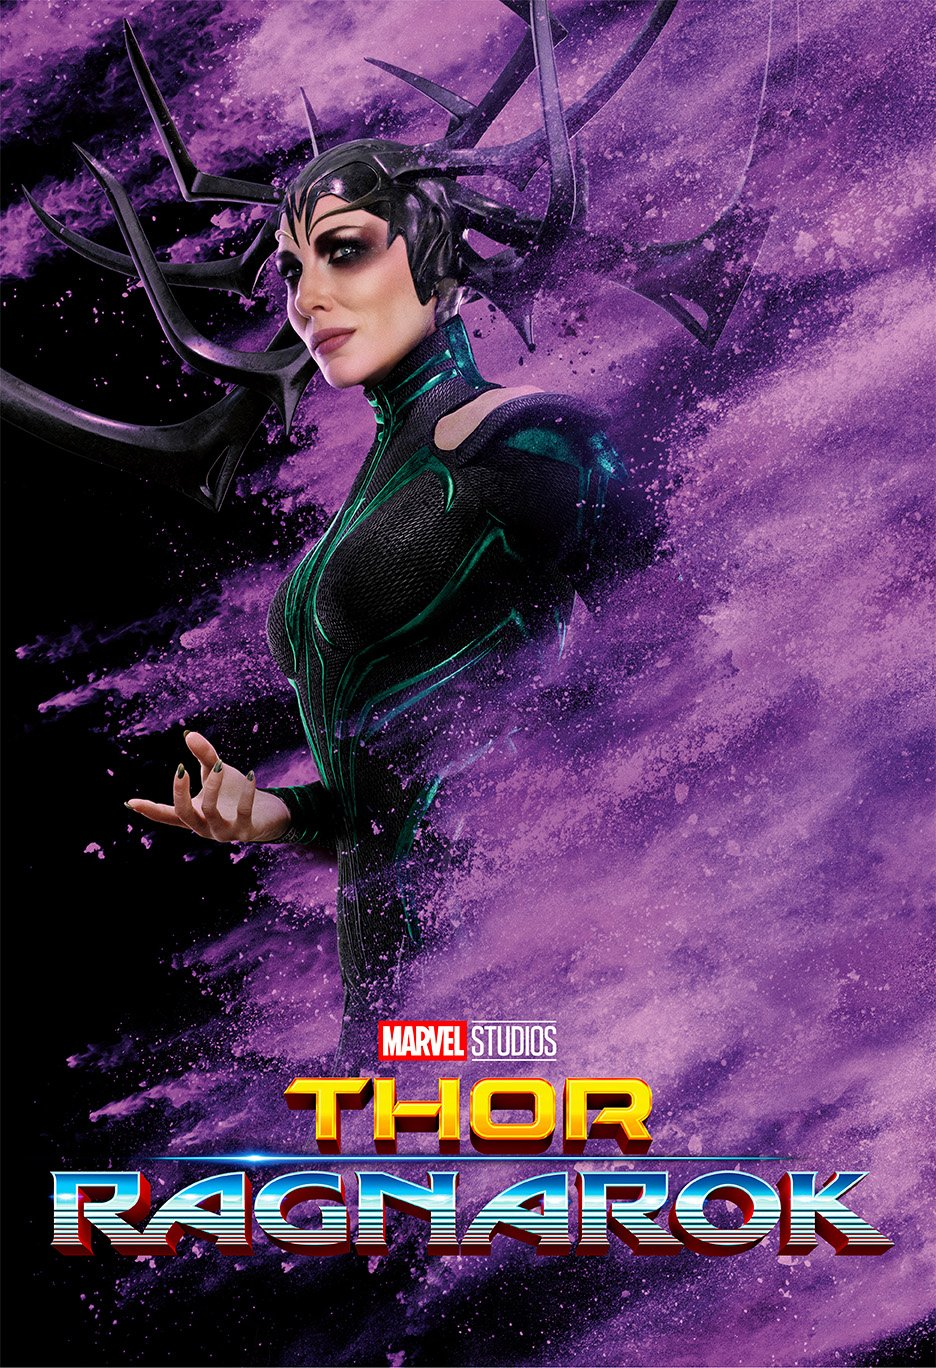 Thor 3 : Ragnarok (2017) - Hela - 13 in x 19 in Movie Poster Flyer BORDERLESS + Free 1 Tile Magnet